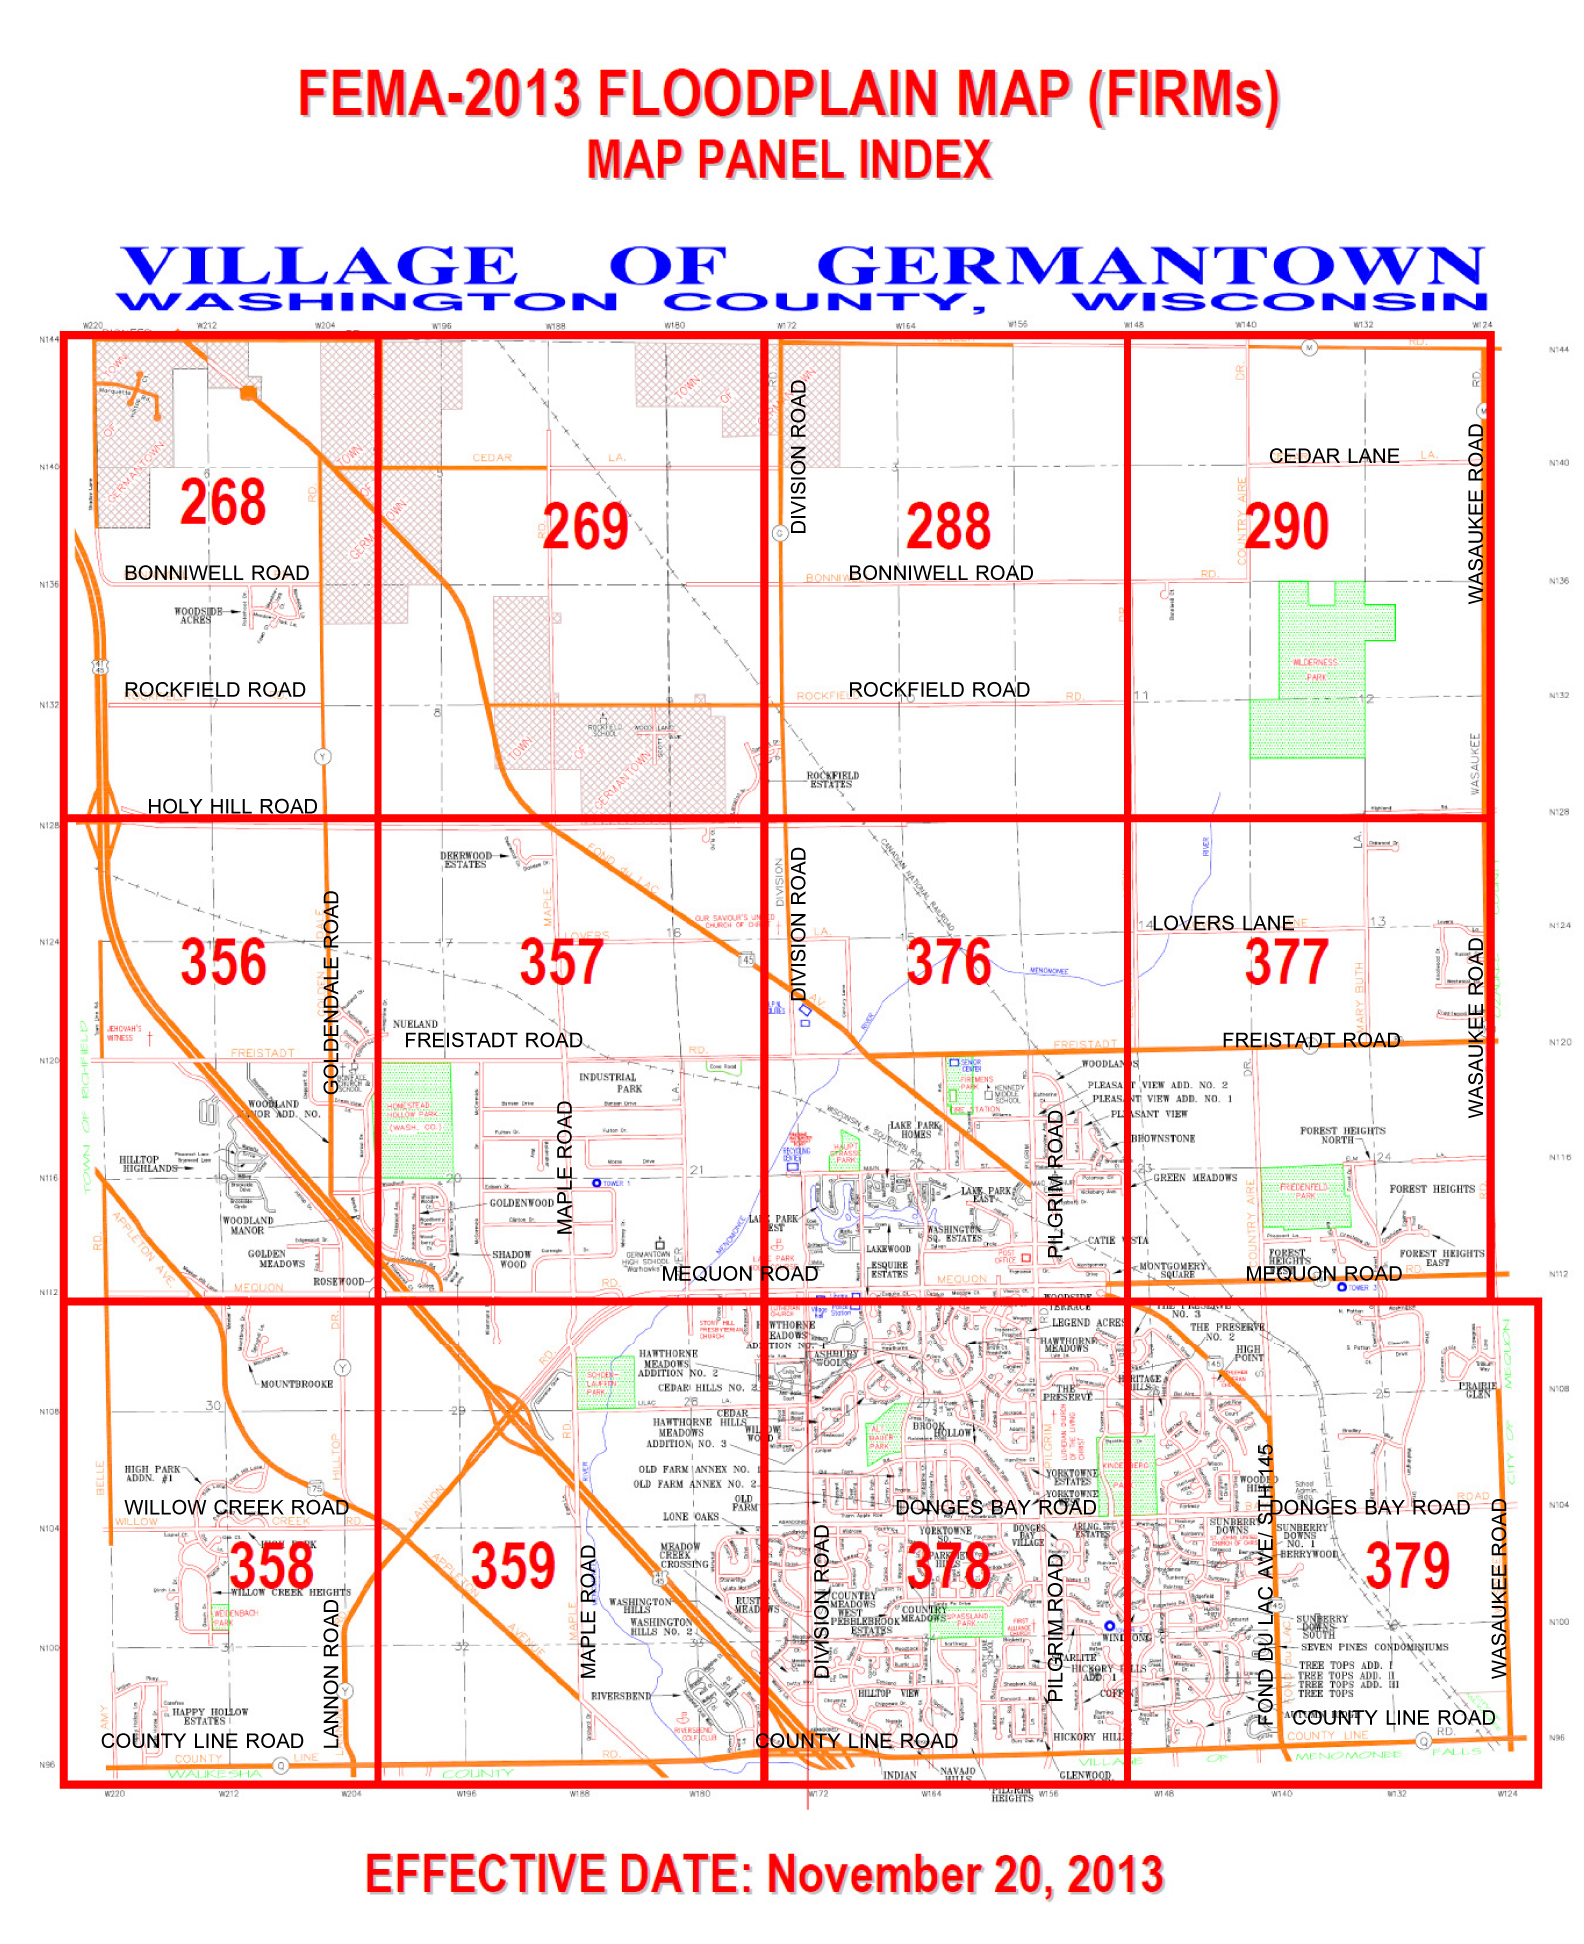 Floodplain map panel index germantown wi official website click the 3 digit panel number to view a detailed map of the 100 year floodplain for your area of interest pooptronica